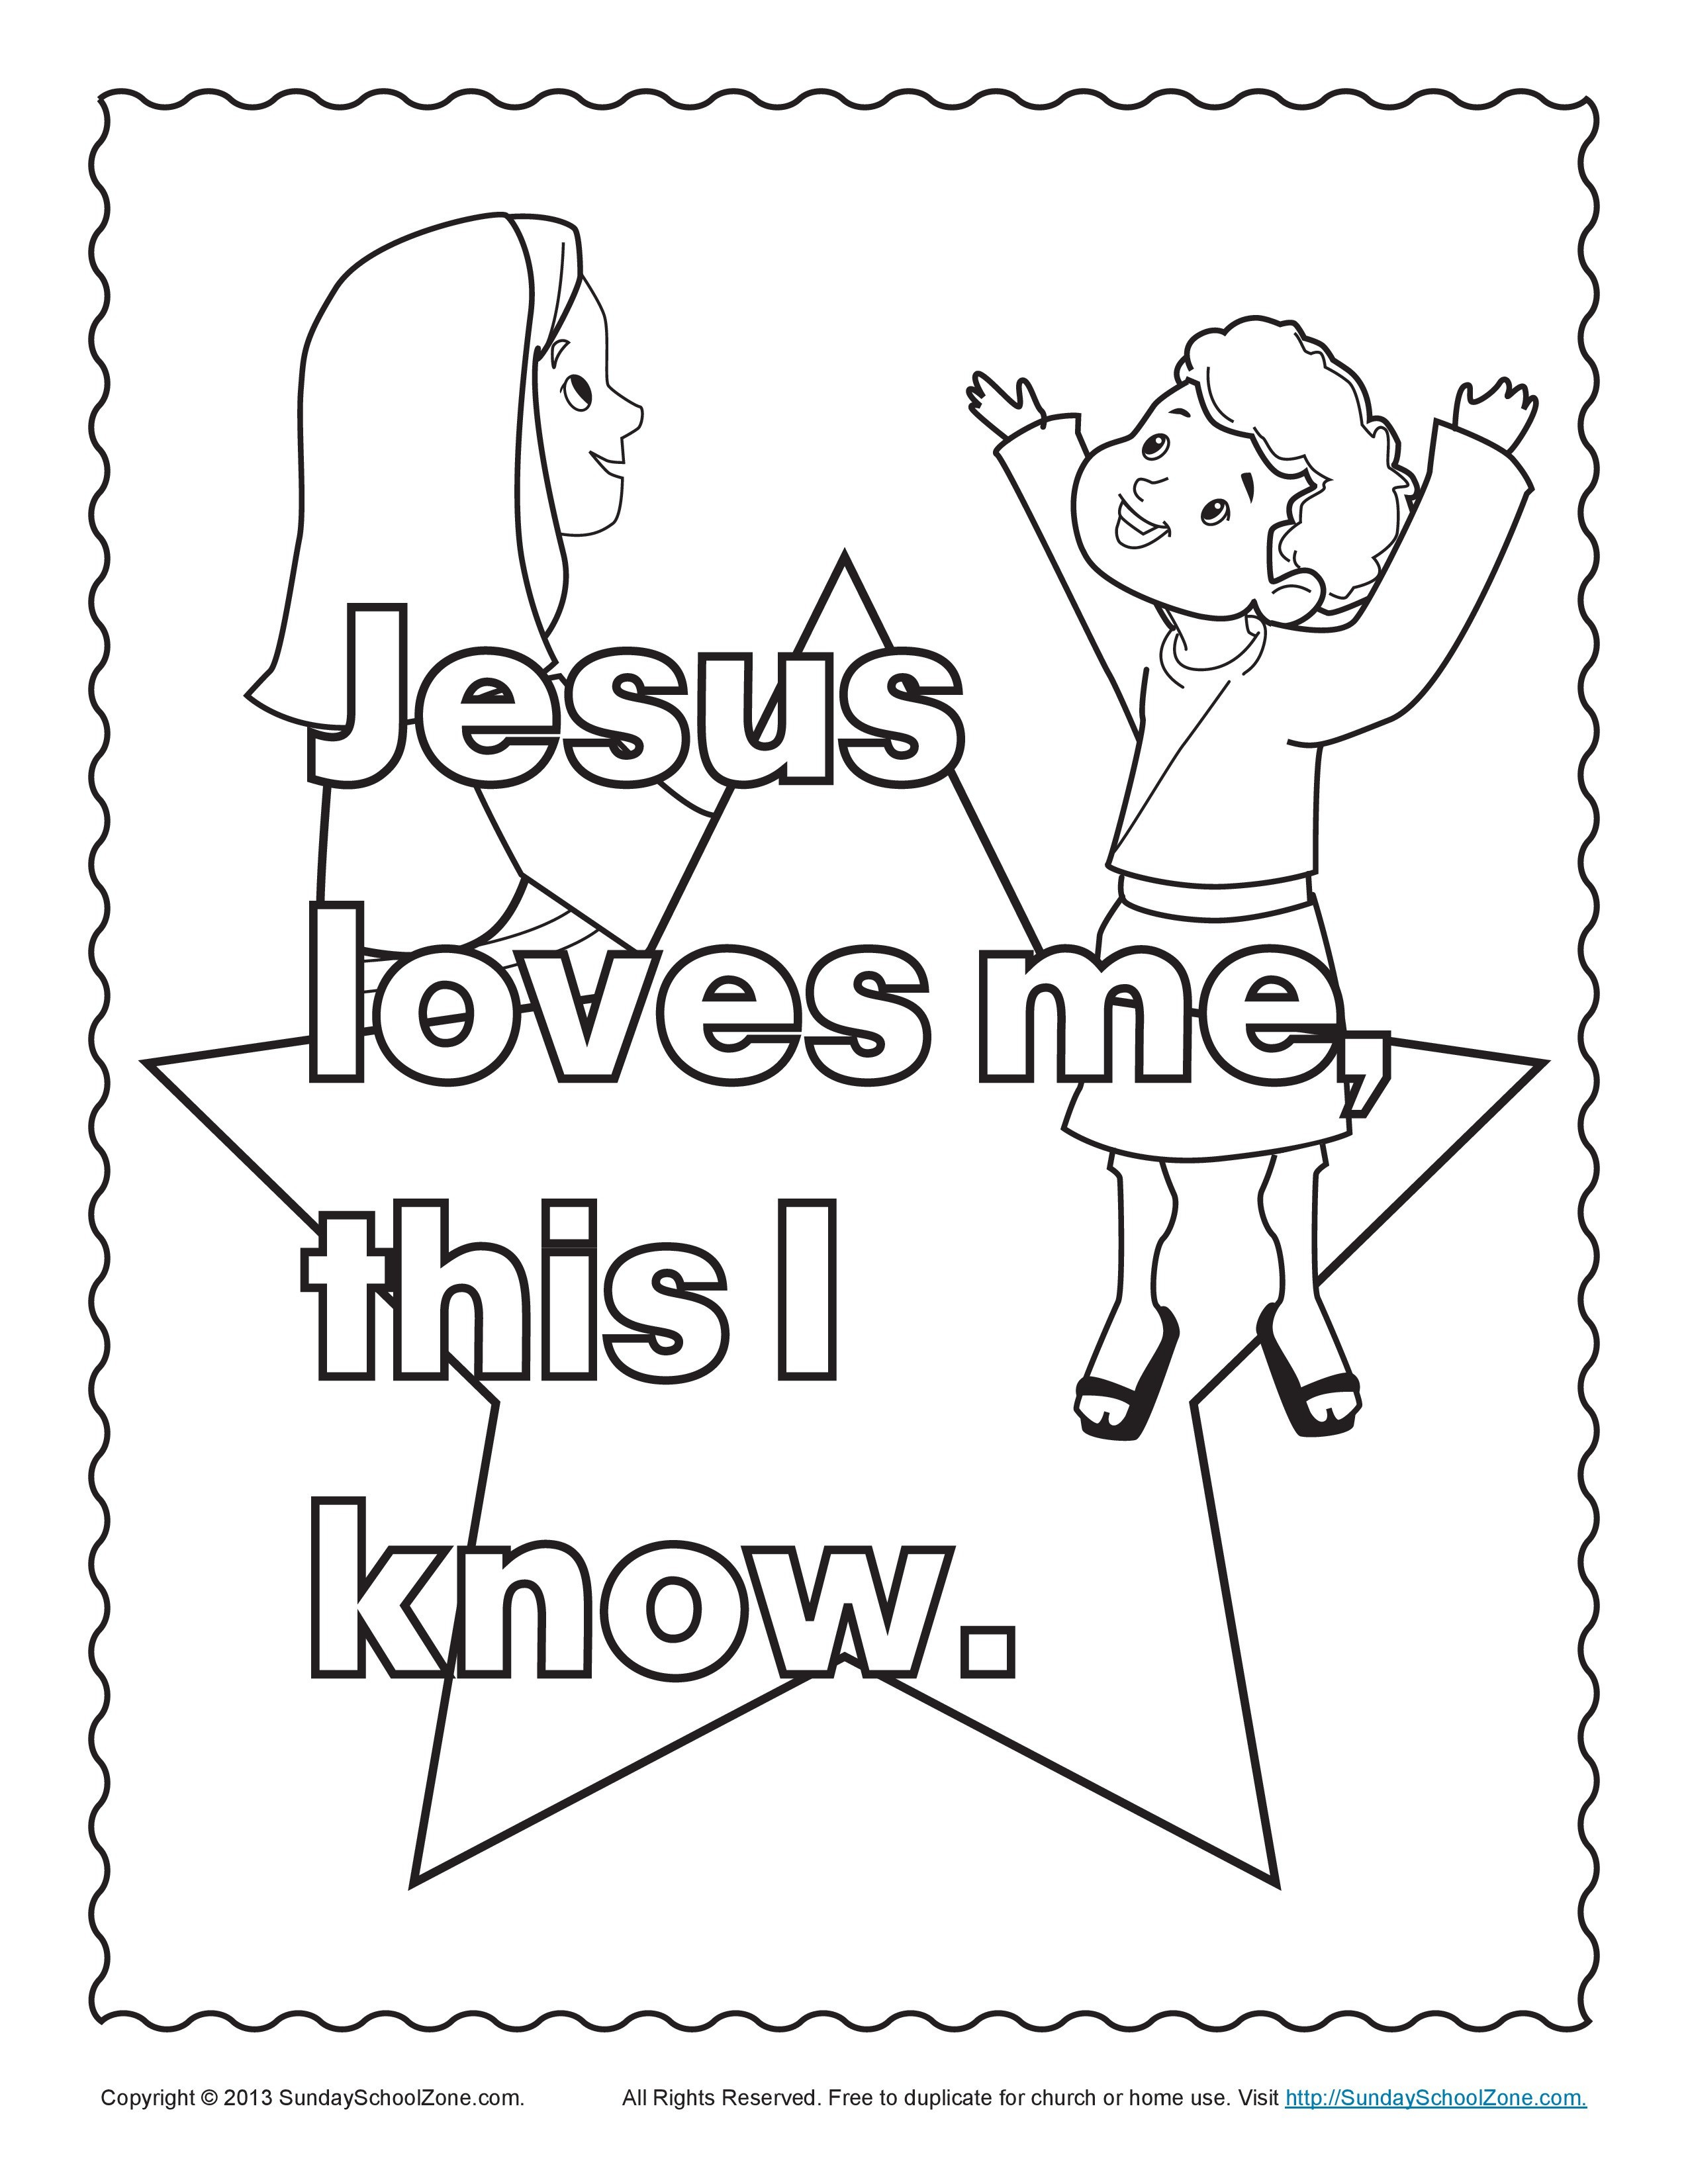 All About Me Coloring Pages Jesus Loves Me Coloring Sheet 8921 Scott Fay Com Extraordinary All